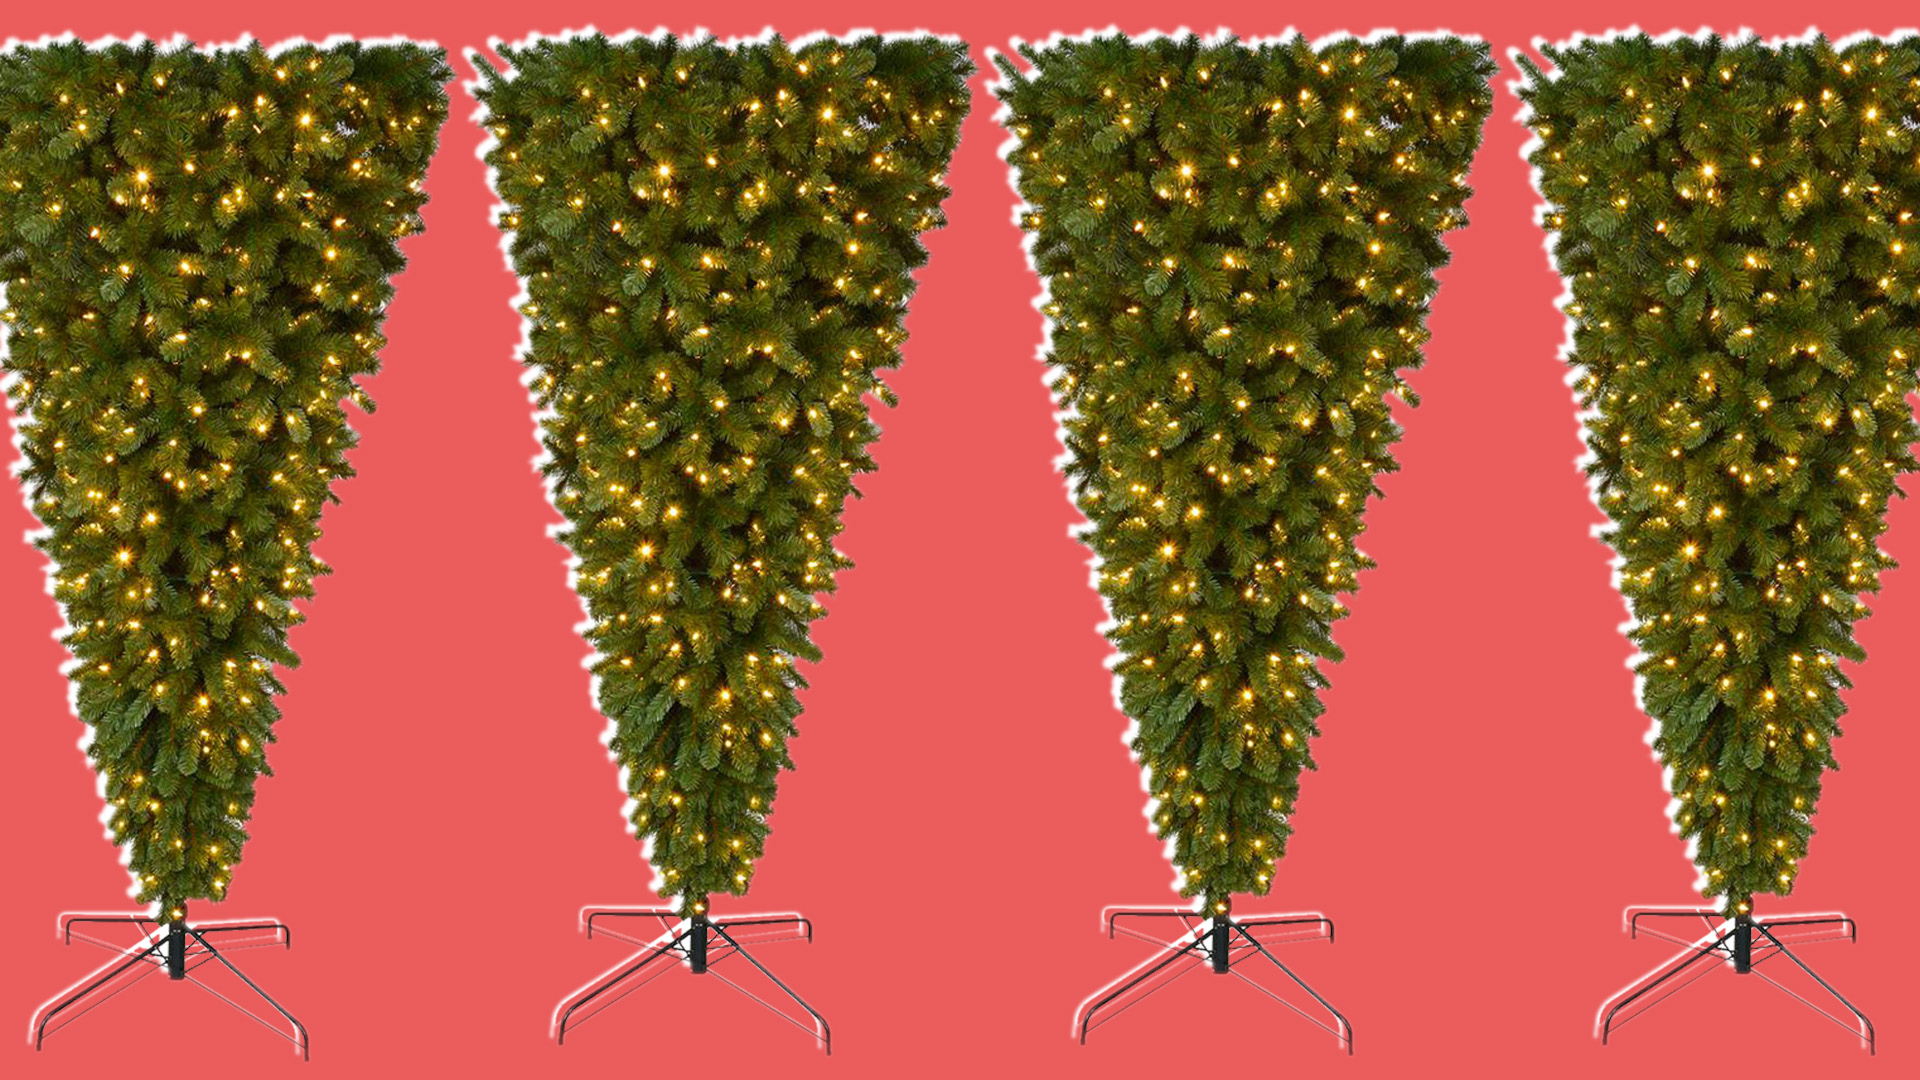 upside down christmas trees are a trend but not everyone finds them festive